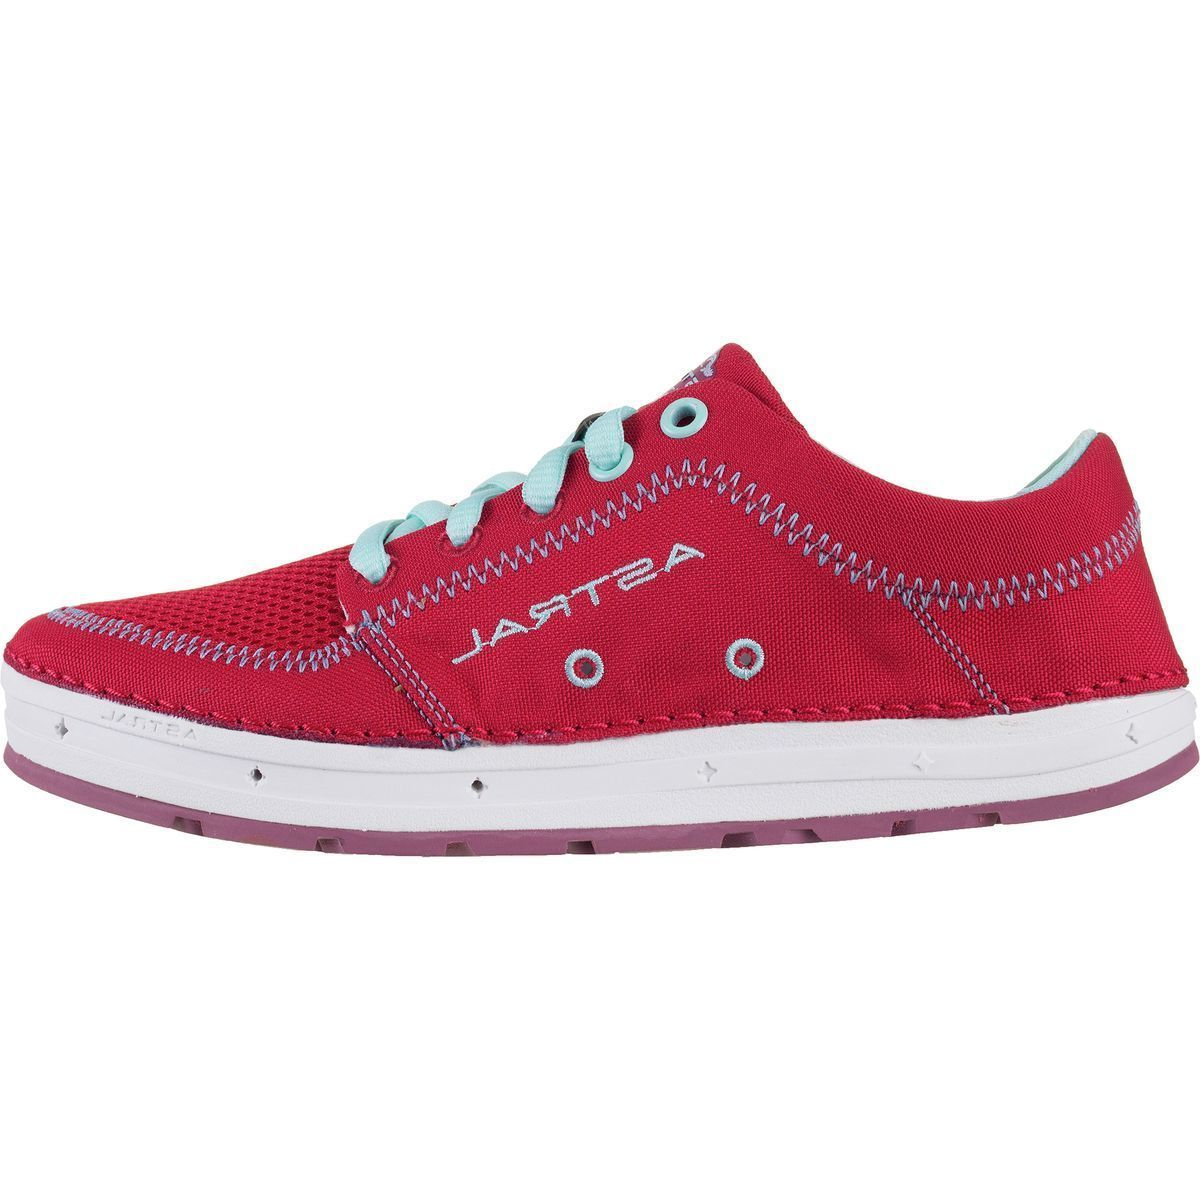 Astral Brewess Water Shoe - Women's